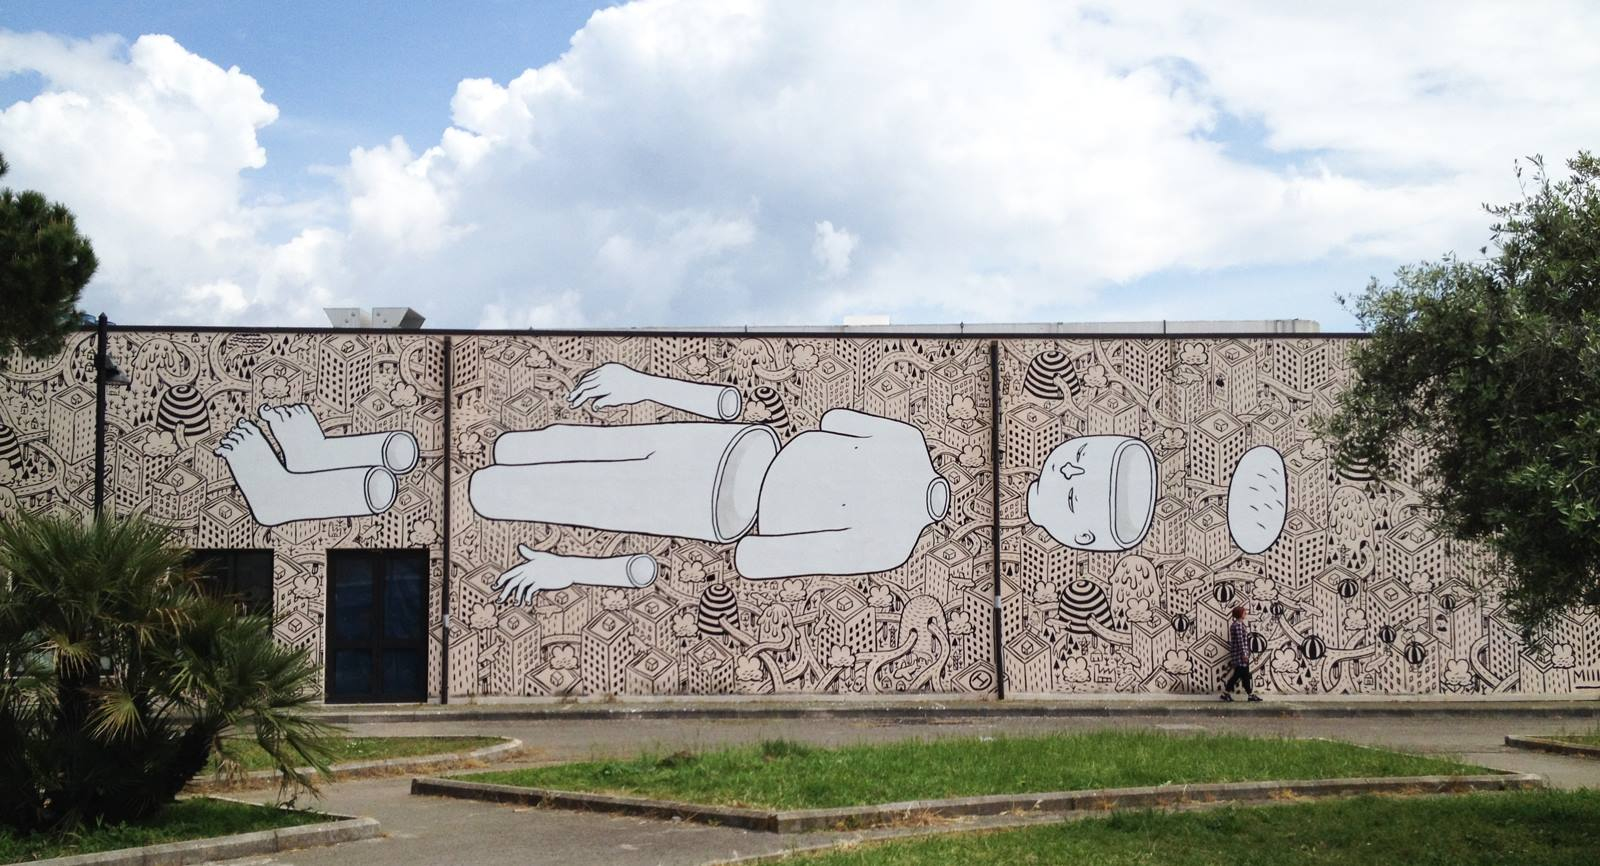 millo-new-mural-for-memorie-urbane-festival-2014-00